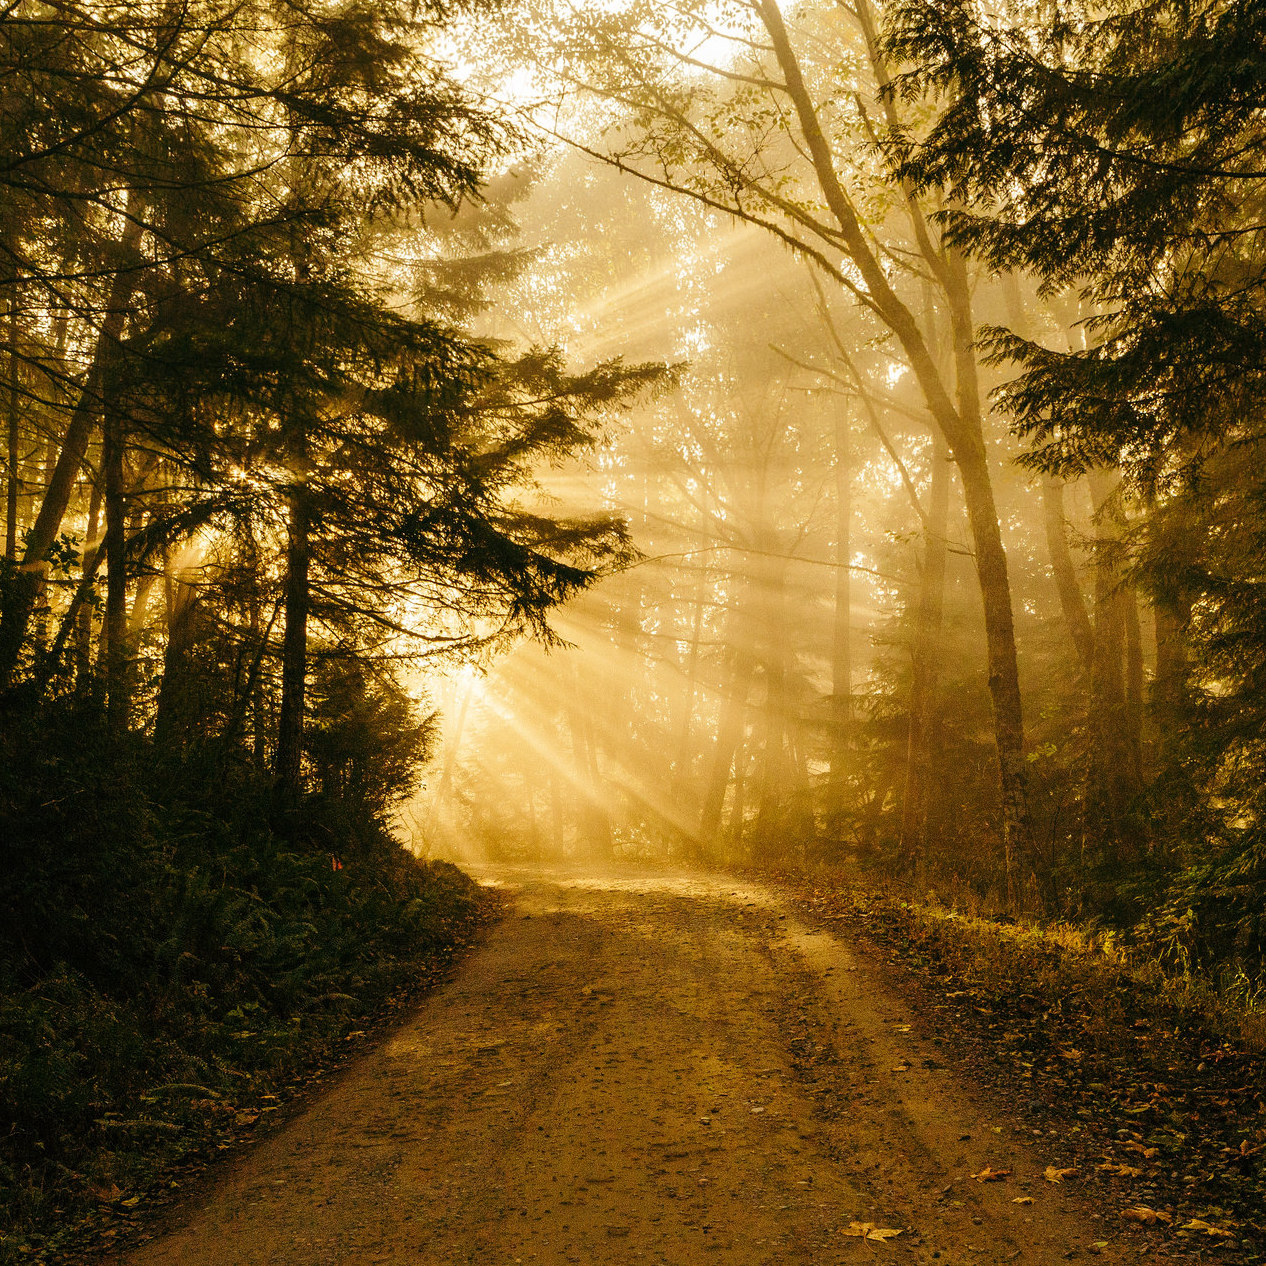 A literary journey, light shining through trees on forest path